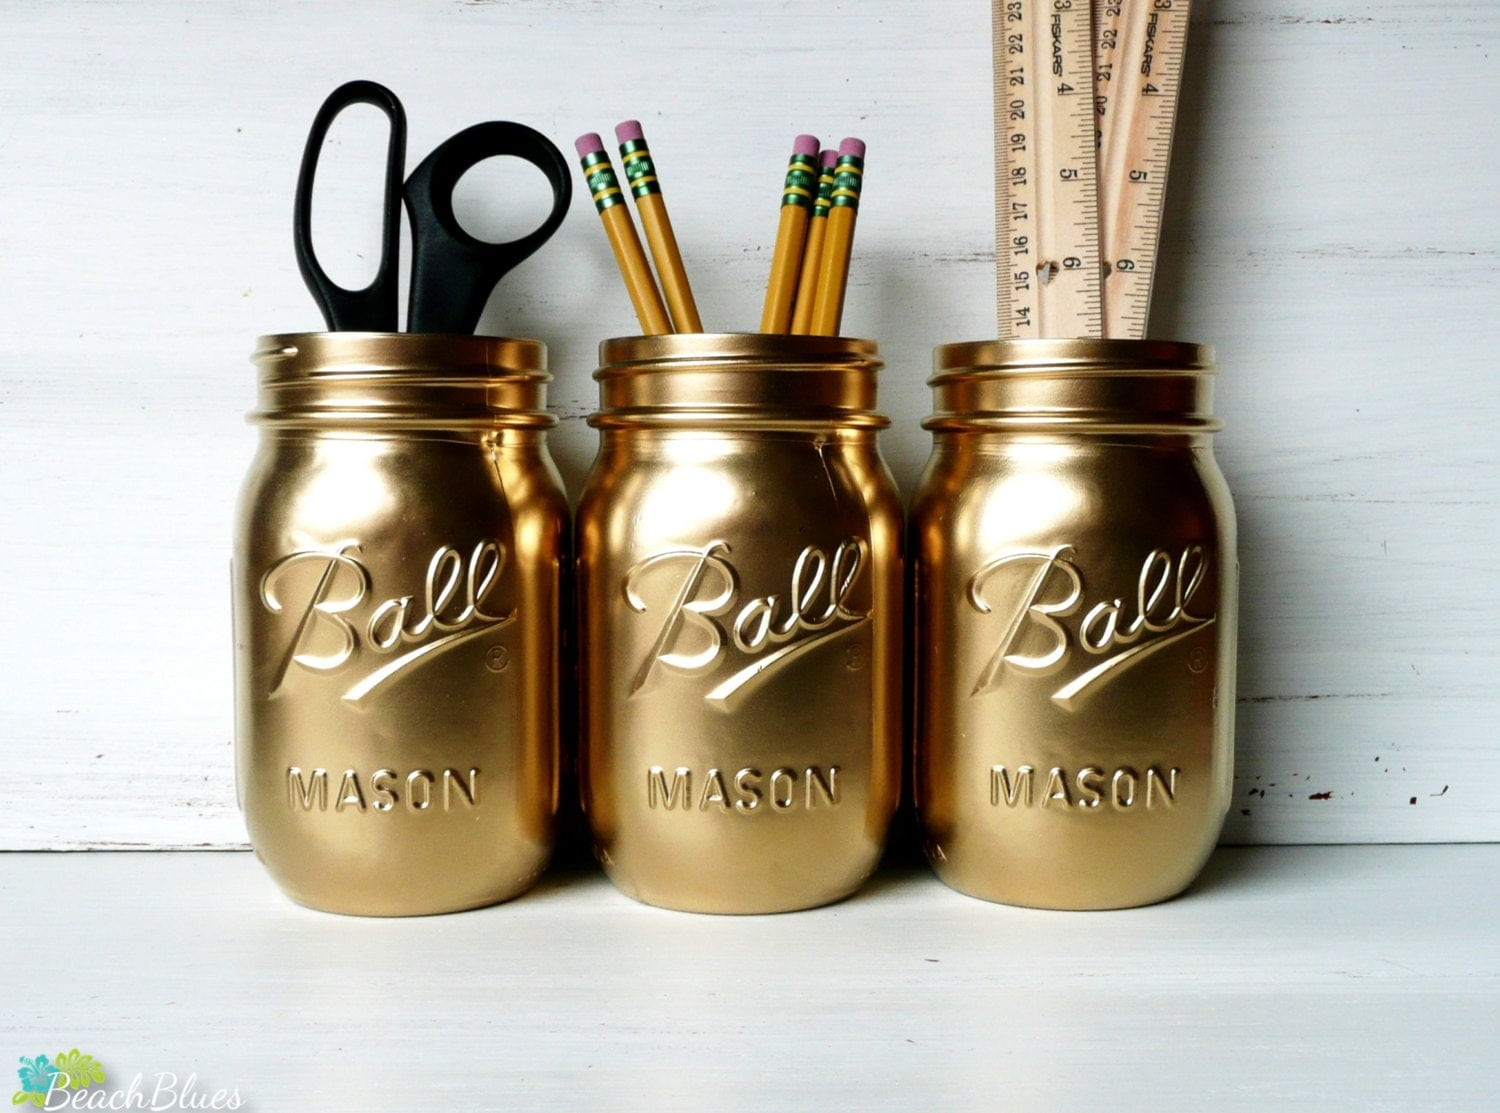 Dorm Decor - Gold Painted Ball Mason Jars - Vase - Office Utensil Holders - Vase - BeachBlues